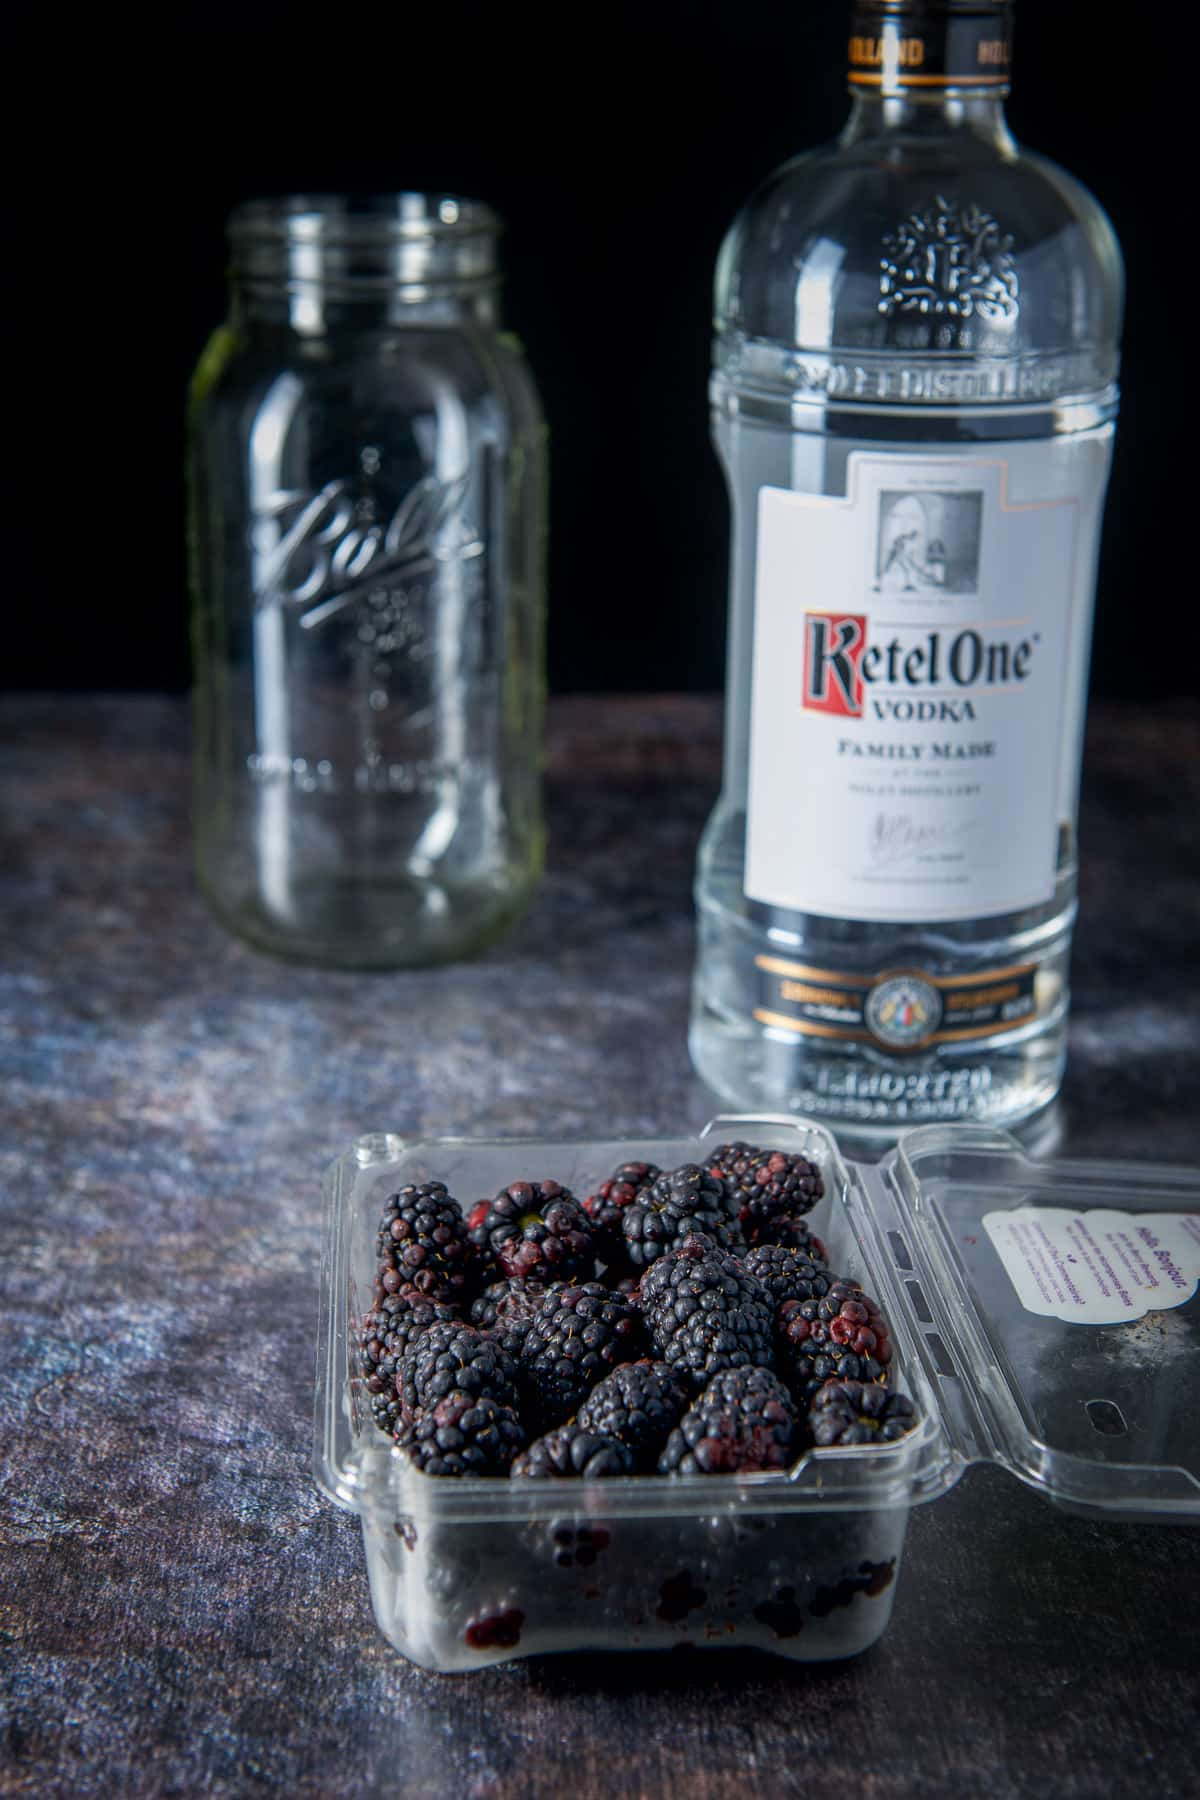 A plastic container of blackberries, bottle of vodka and a jar